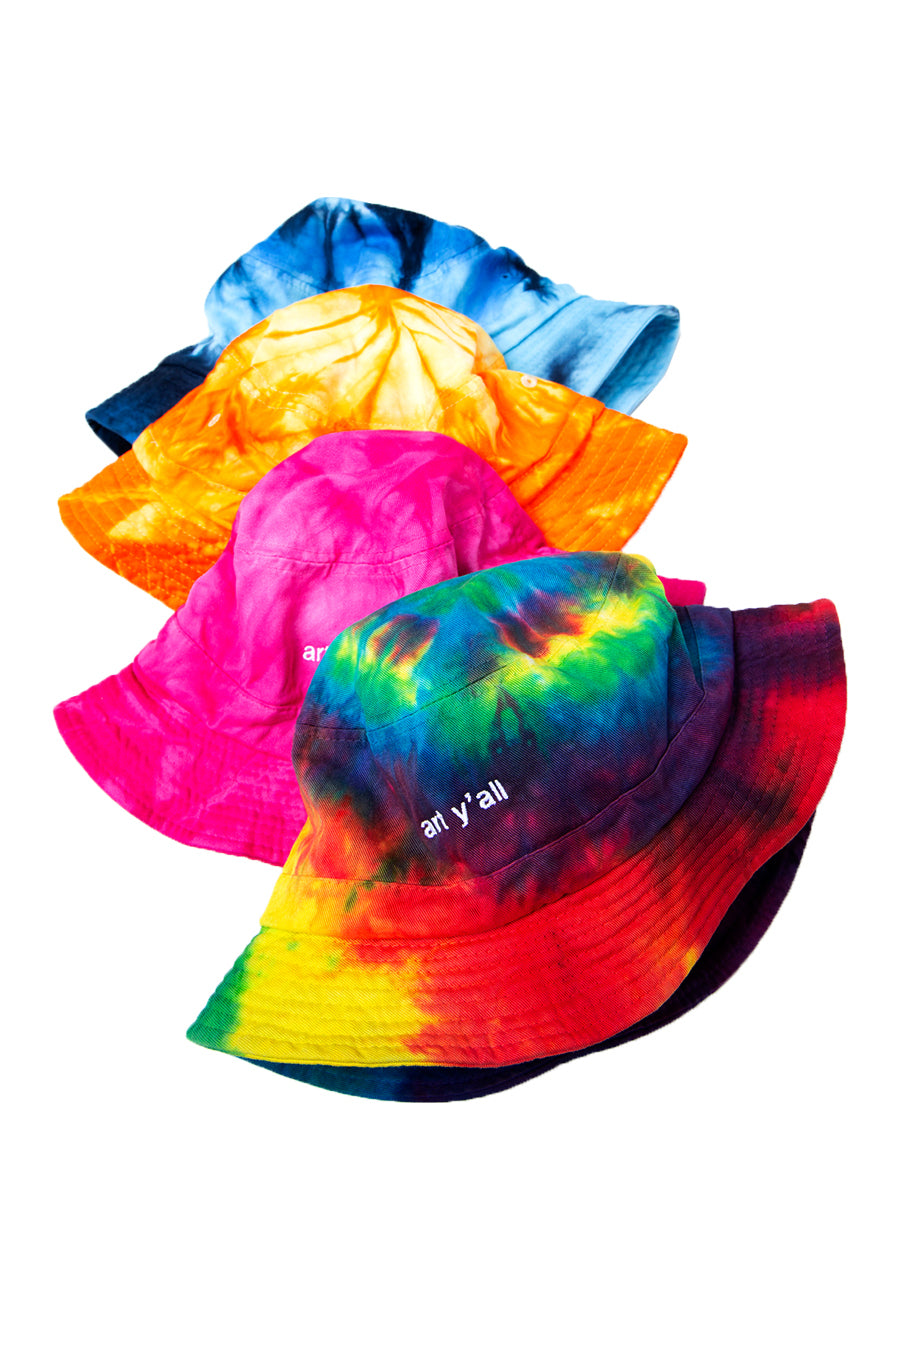 Art Y'all - Bucket hat